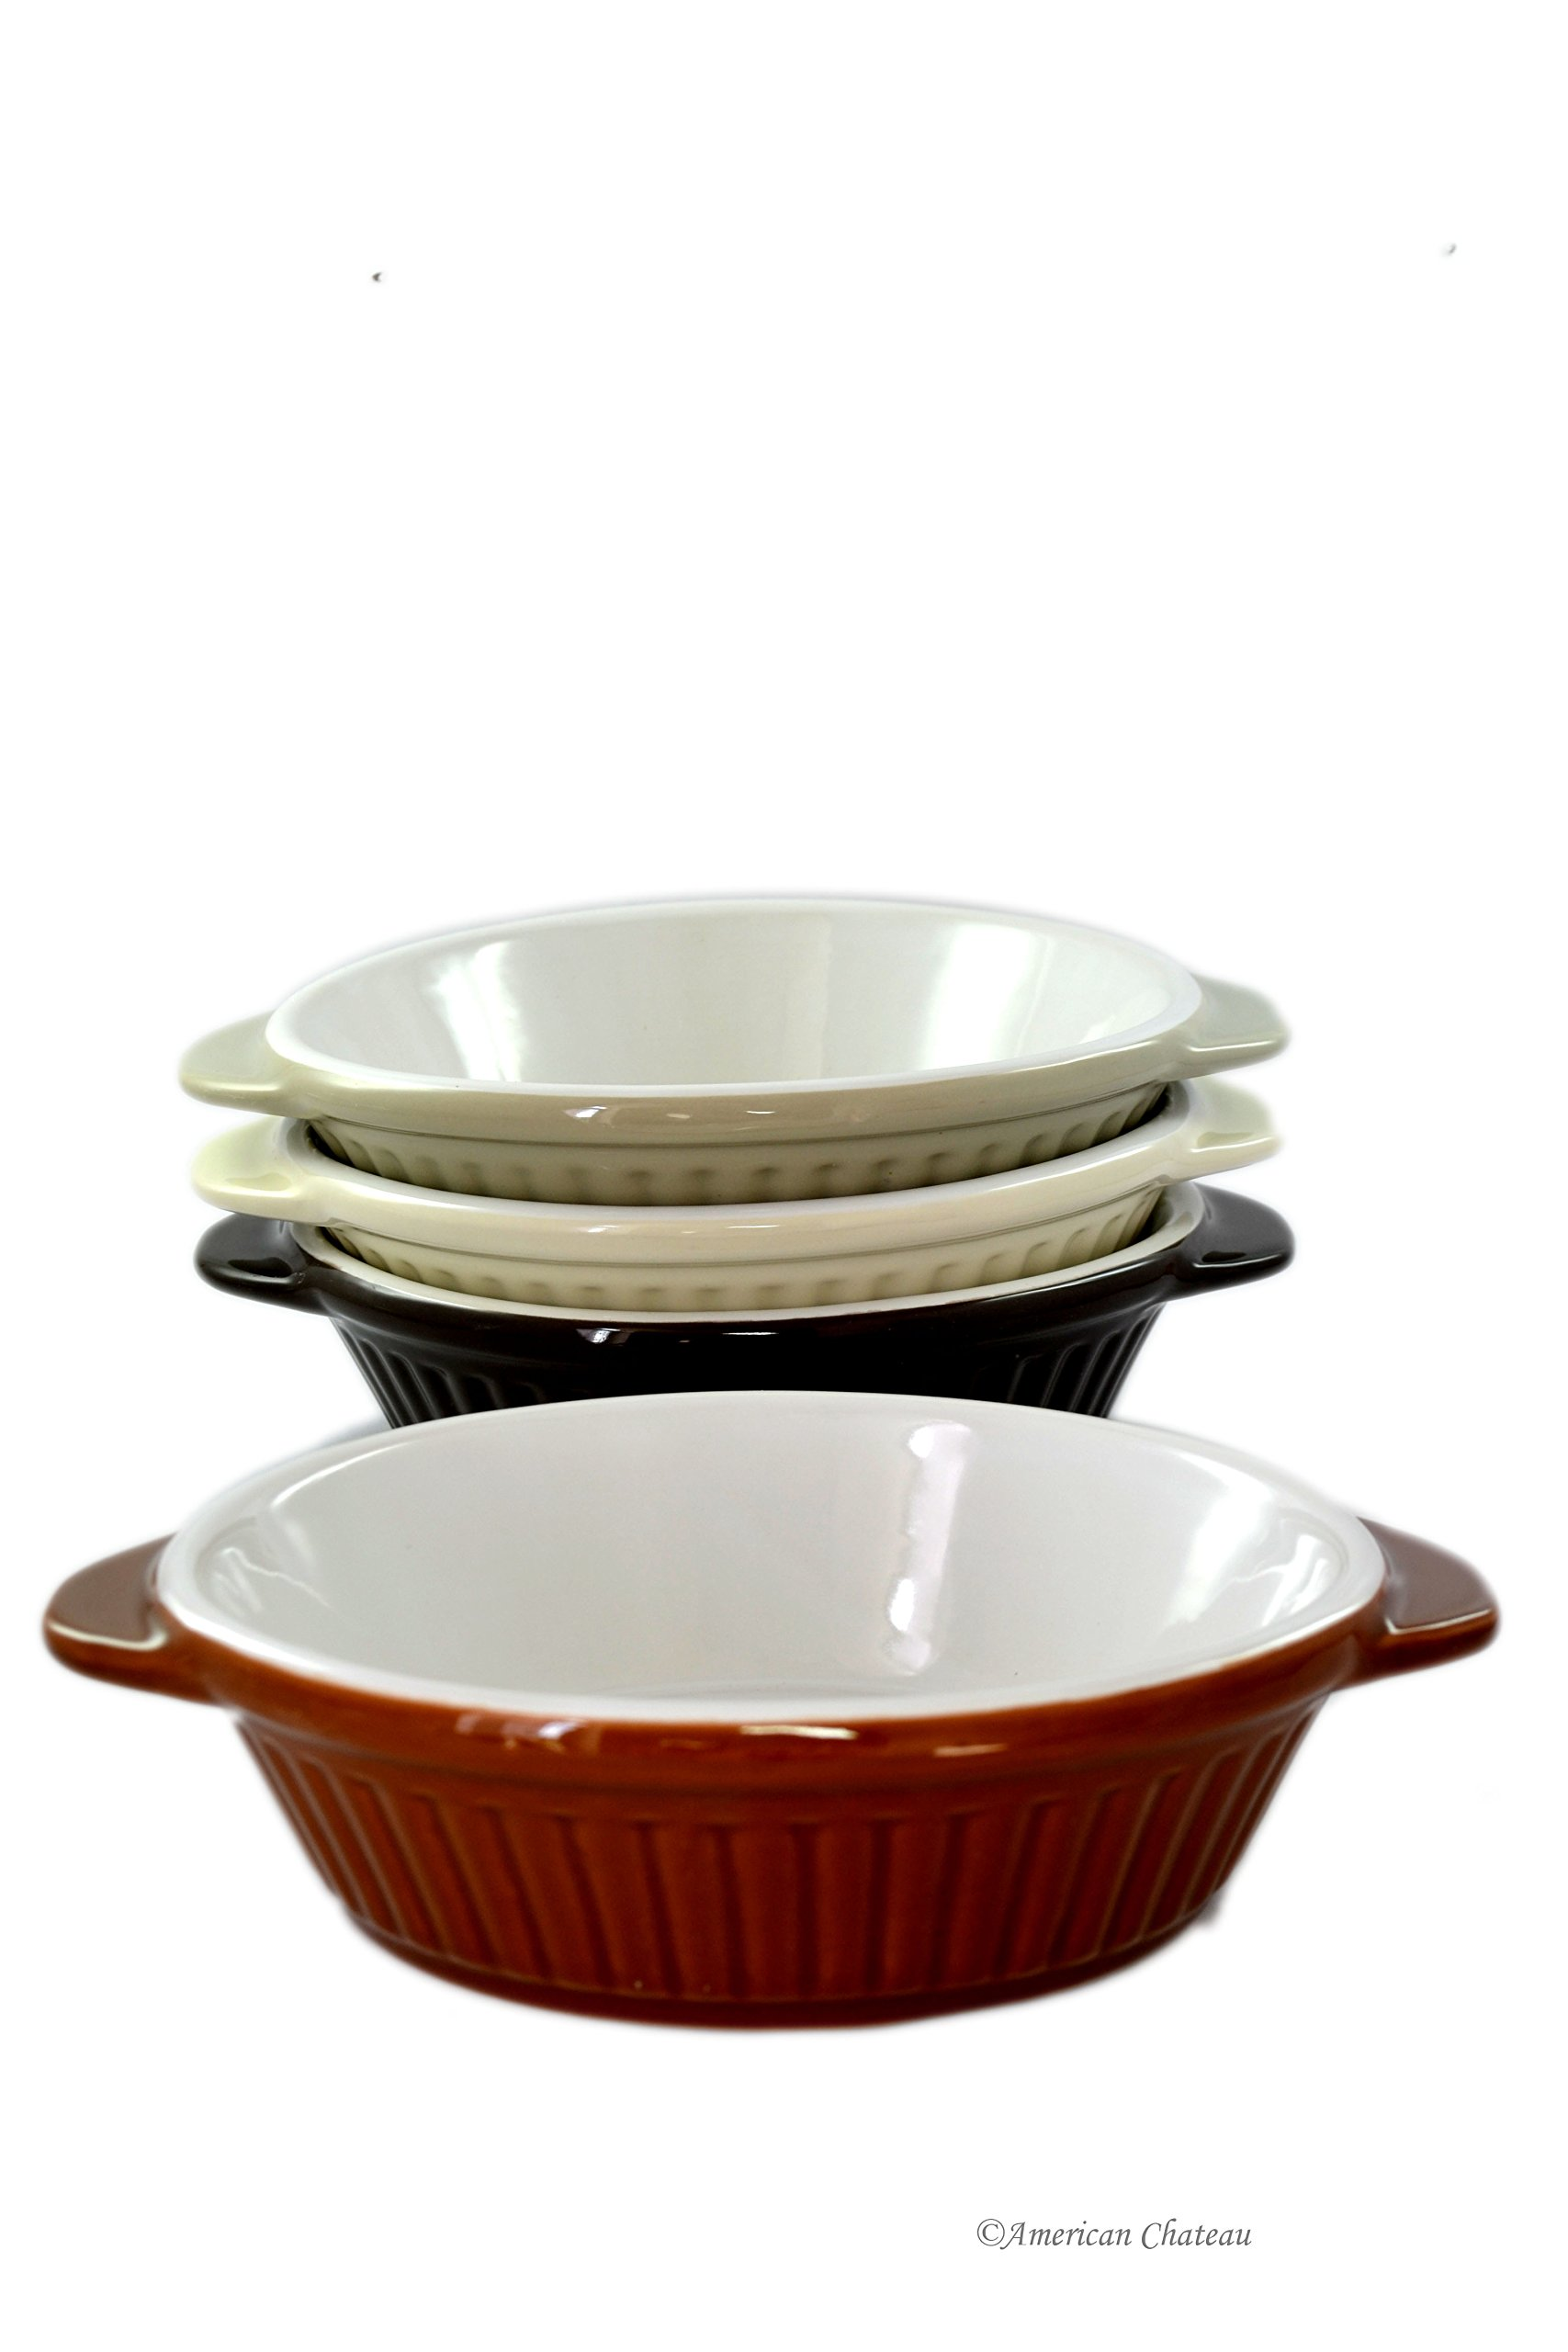 Set 4 Large Oven-Safe Assorted Color Porcelain Appetizer Au Gratin Baker Dishes by American Chateau (Image #1)